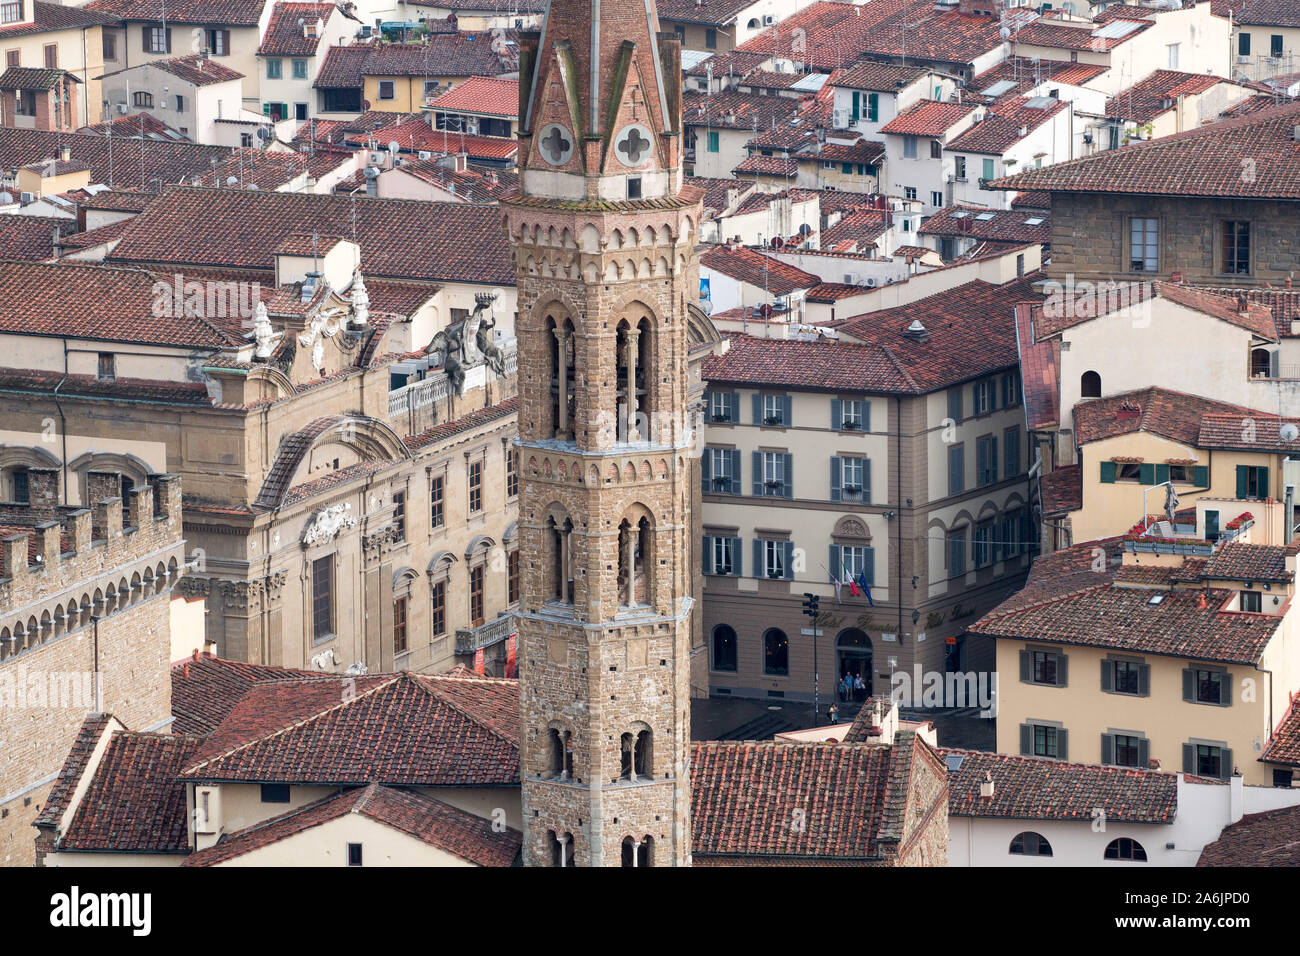 Badia Fiorentina in Historic Centre of Florence listed World Heritage by UNESCO in Florence, Tuscany, Italy. August 23rd 2019© Wojciech Strozyk / Alam Stock Photo